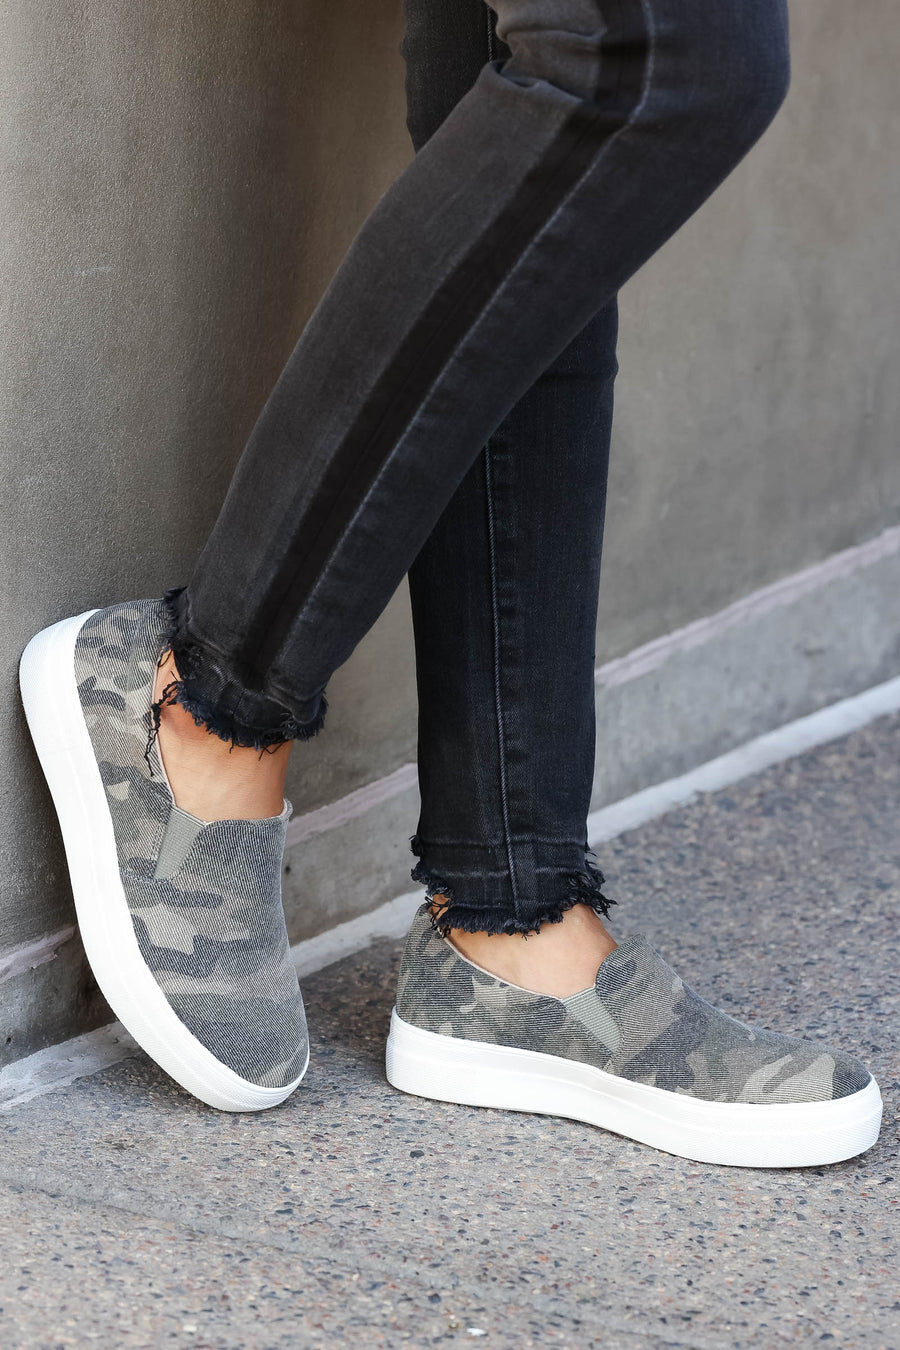 Better Get Going Sneakers - Camo closet candy women's trendy camouflage slip on shoes 1